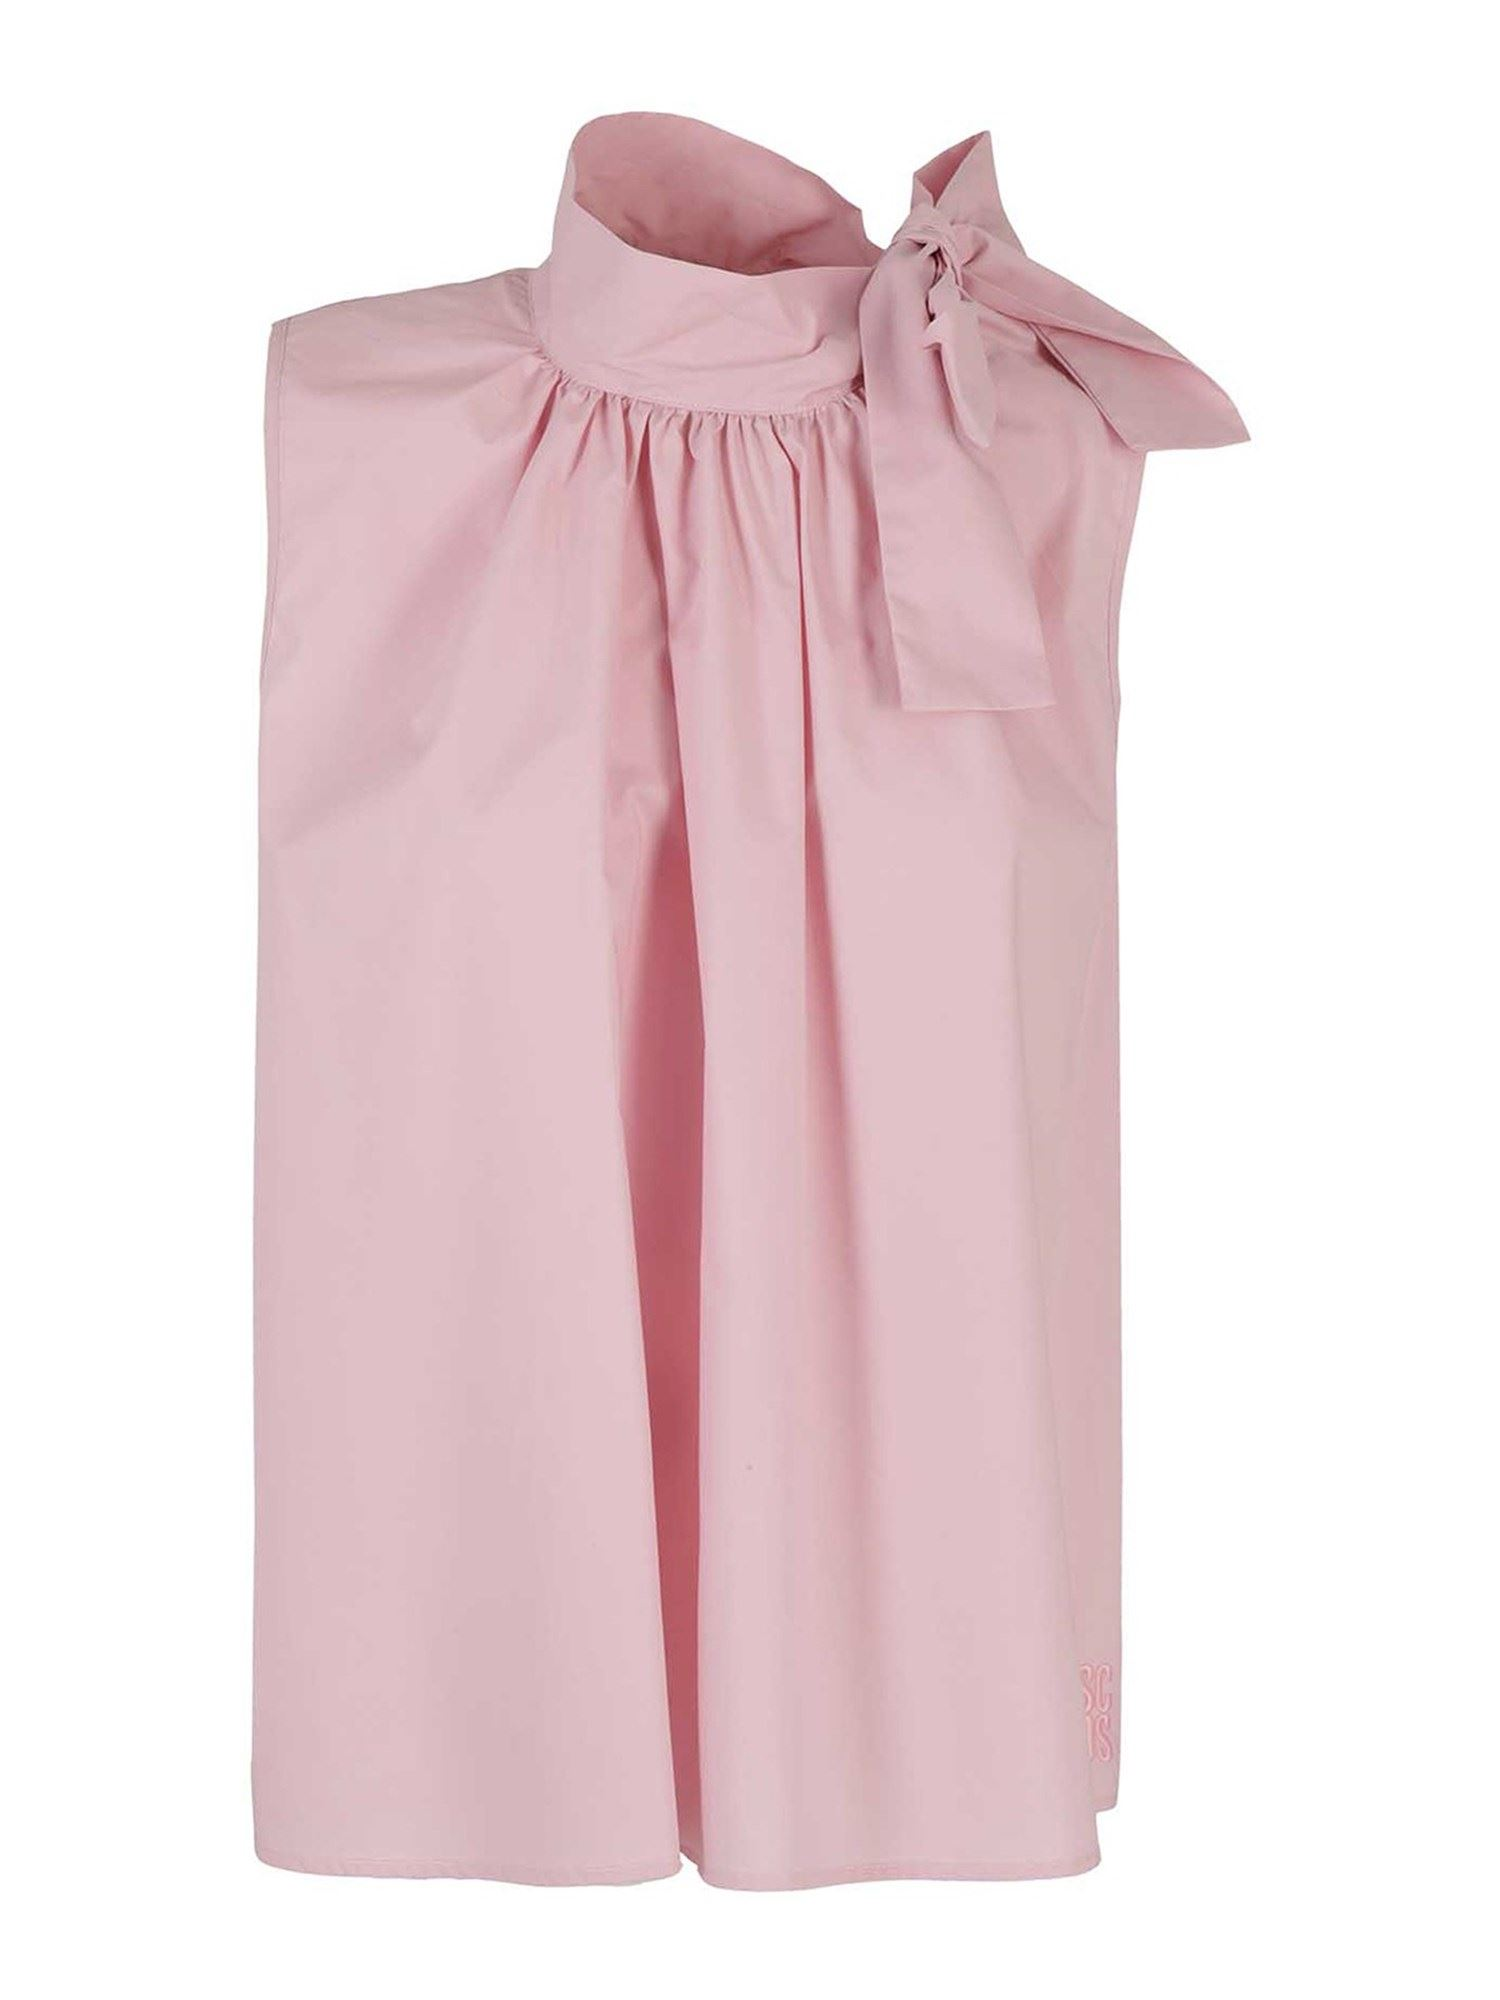 Semicouture LAURENCE TANK TOP IN PINK